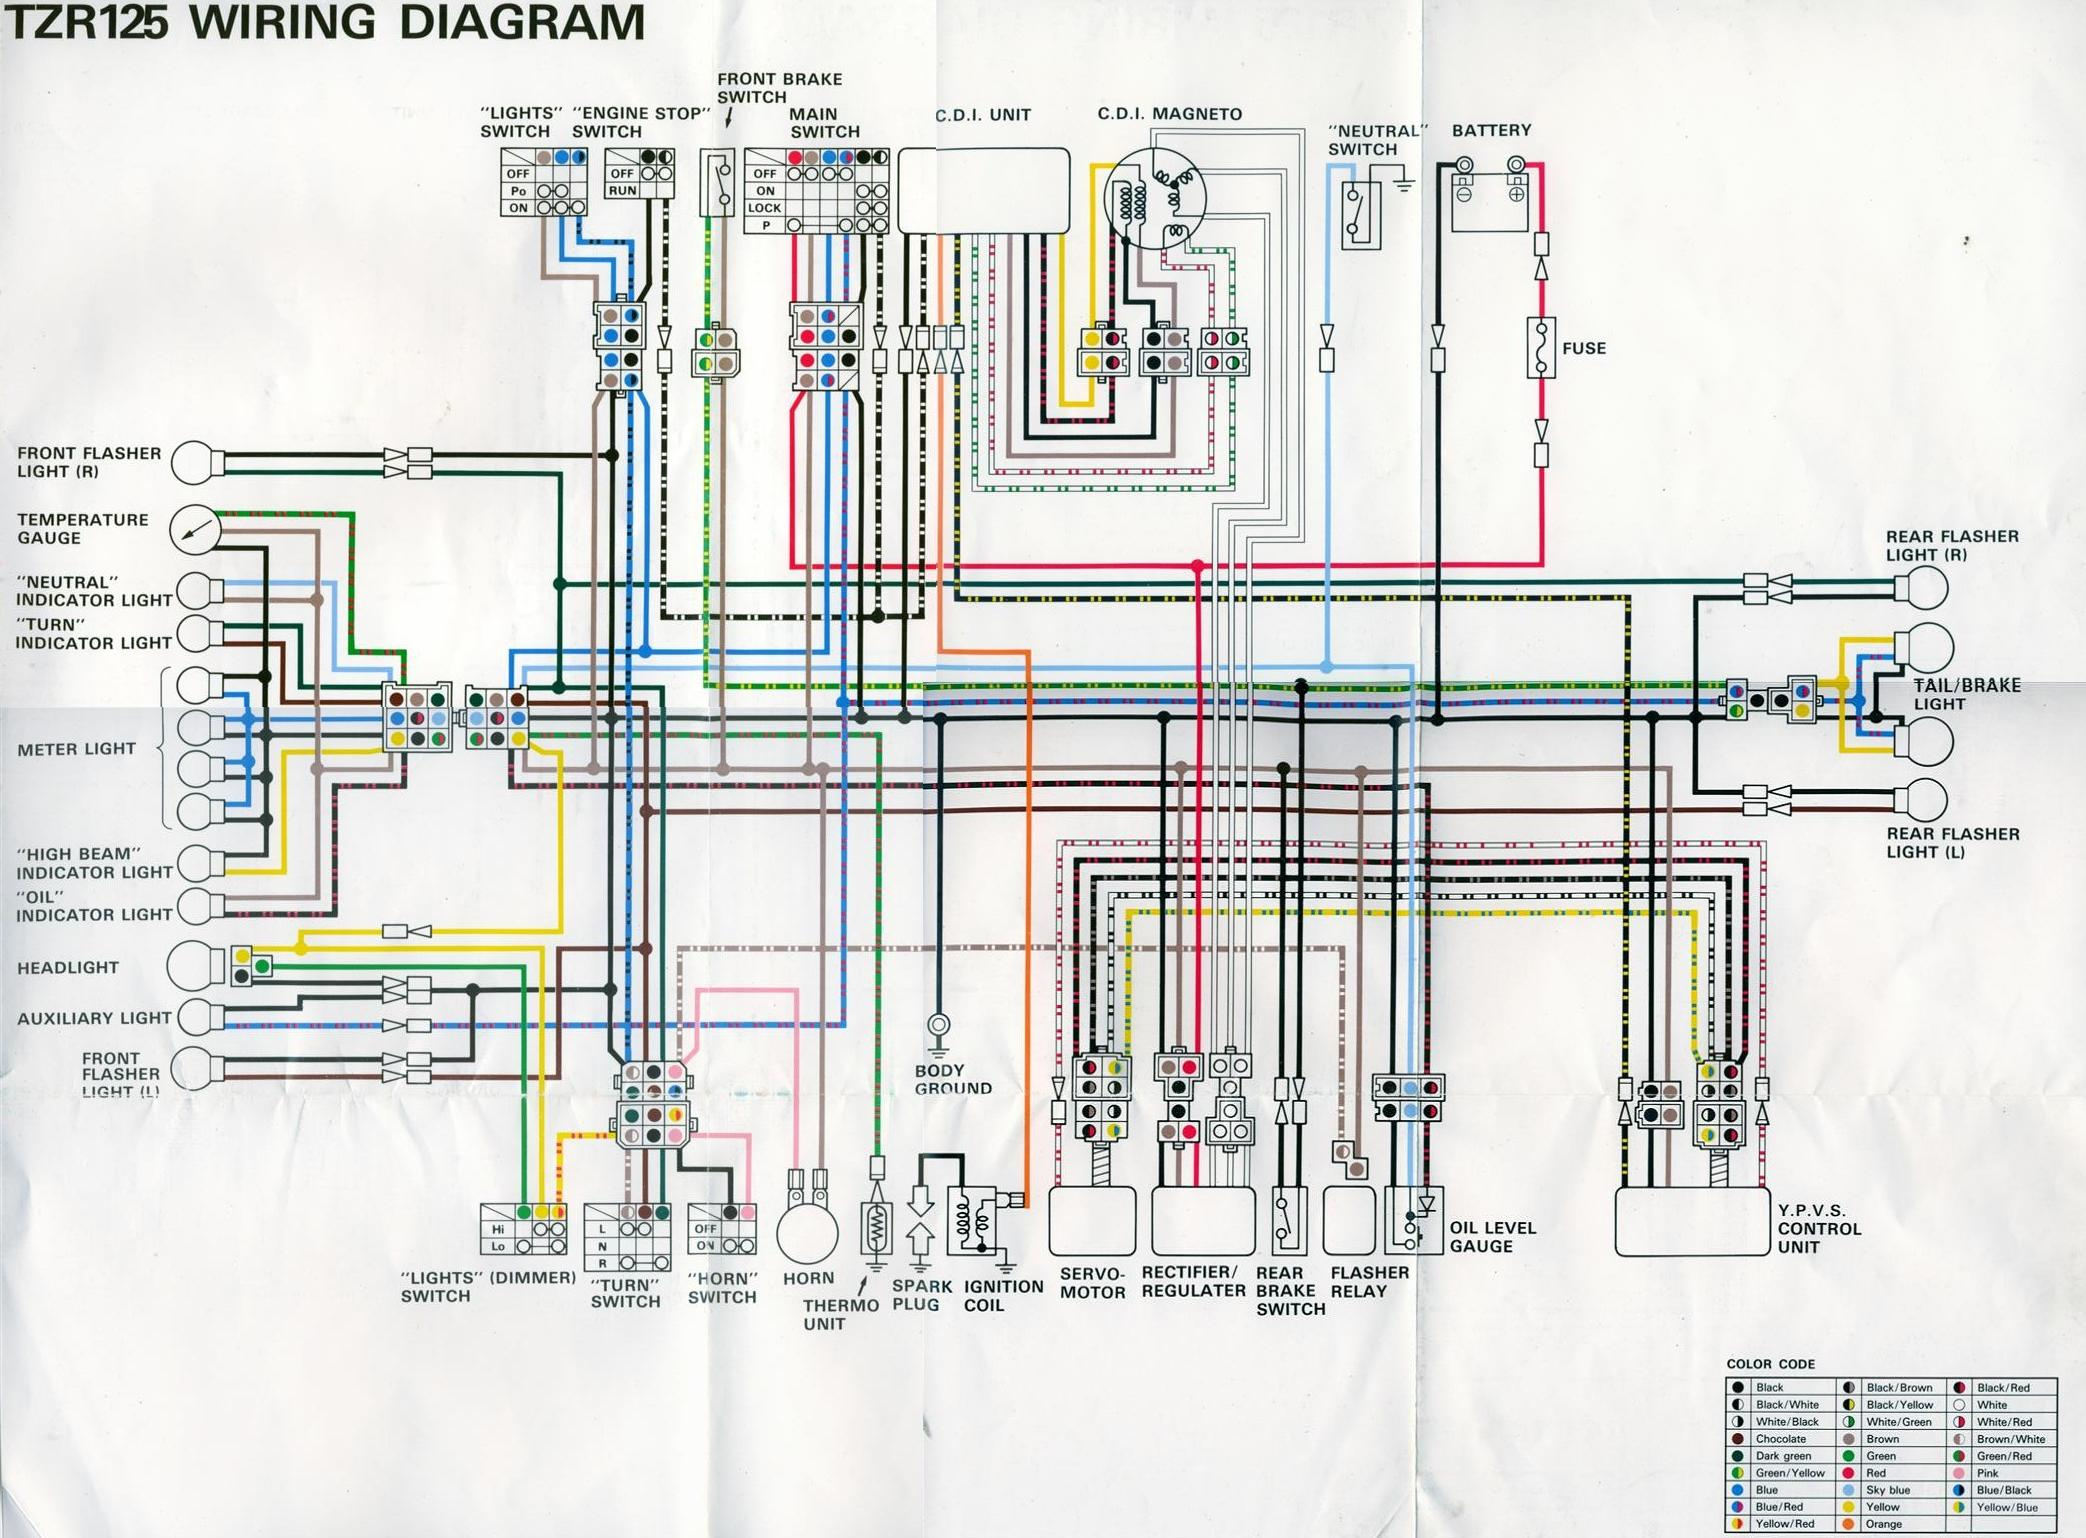 Peachy Wiring Diagram Furthermore Yamaha 80 Parts Diagram On Yamaha Chappy Wiring Digital Resources Antuskbiperorg